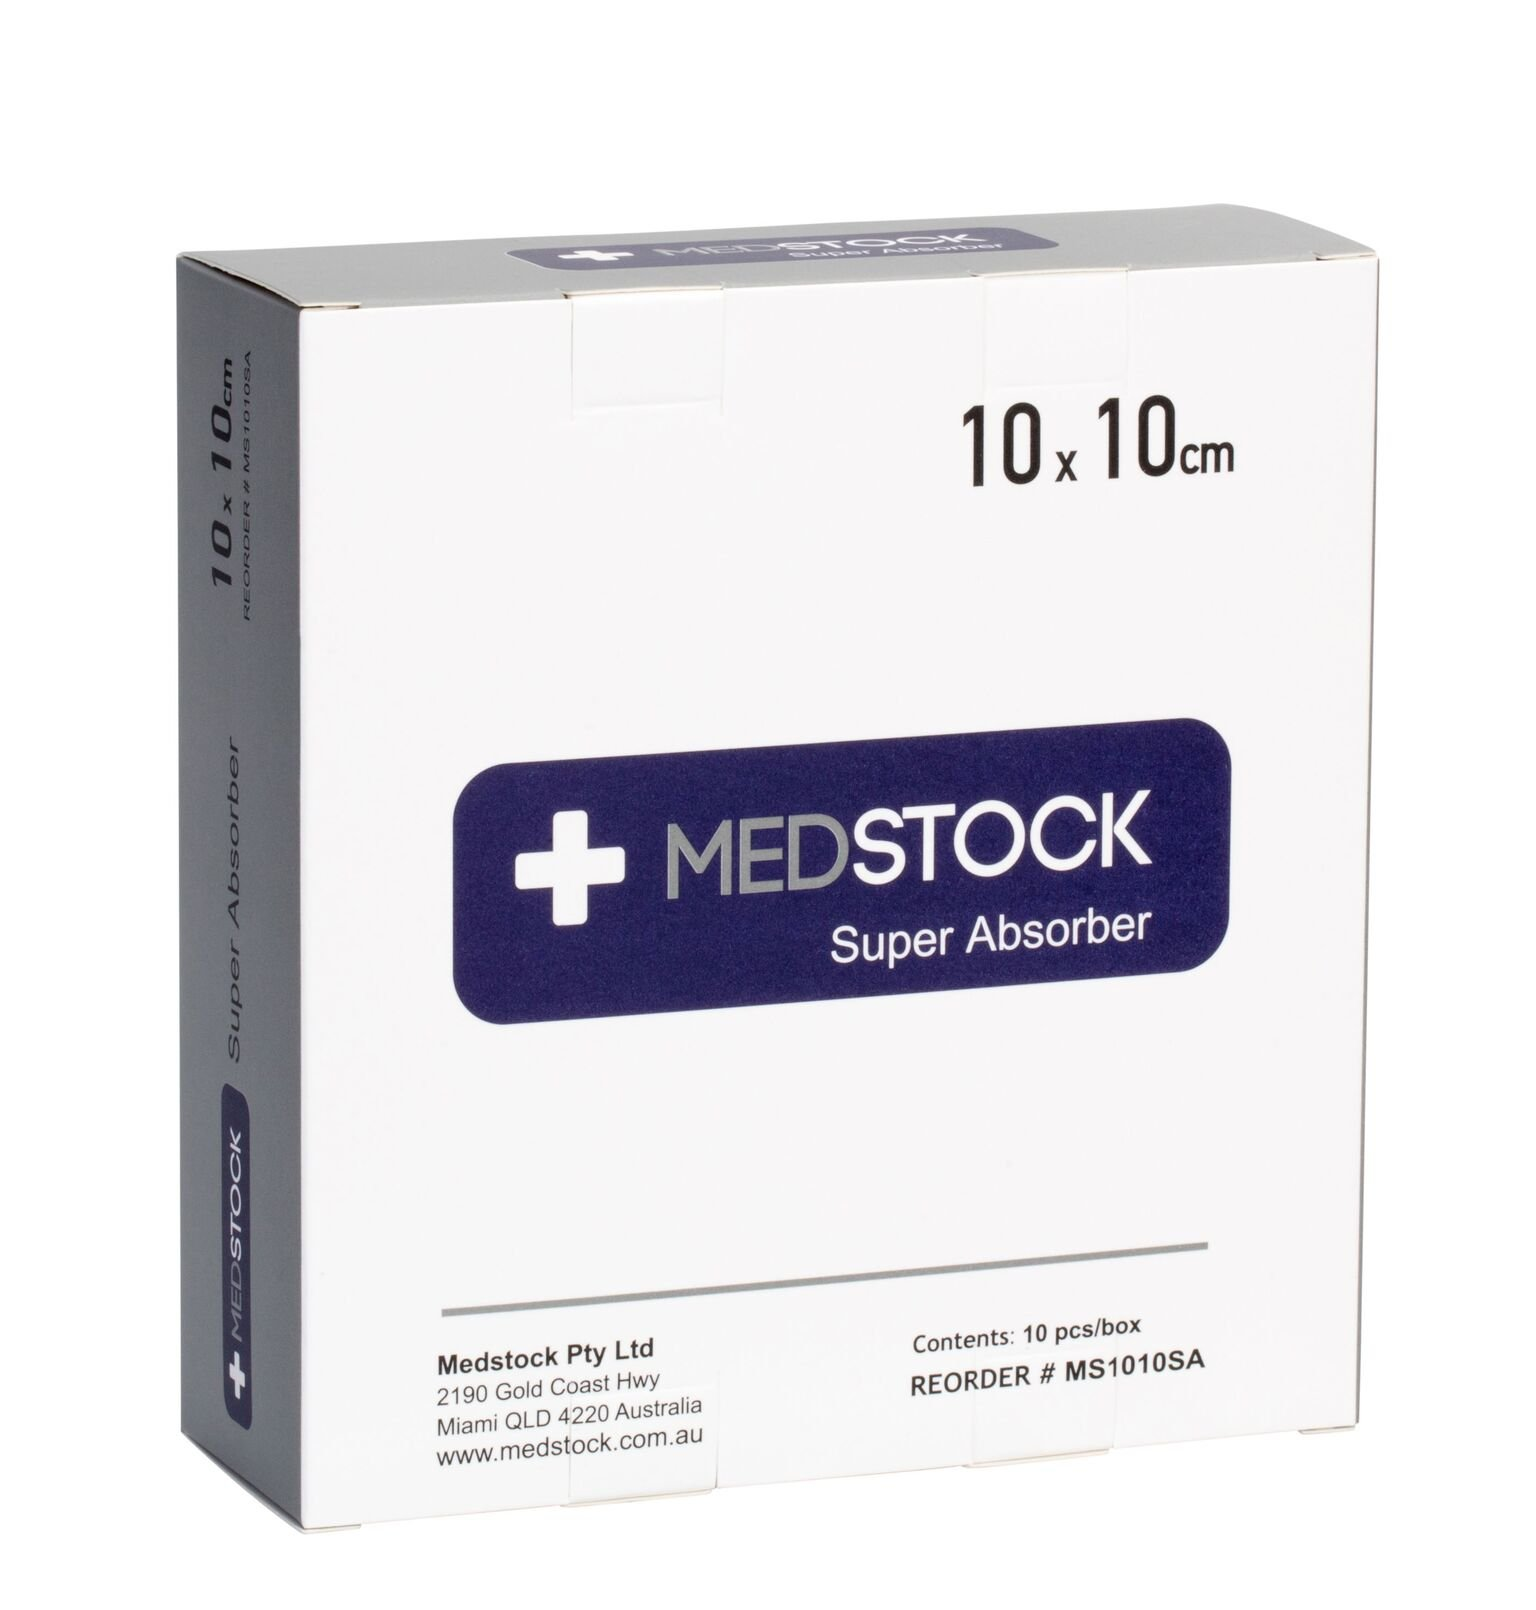 MEDSTOCK SUPER ABSORBENT DRESSING 10CM X 10CM, BOX 10